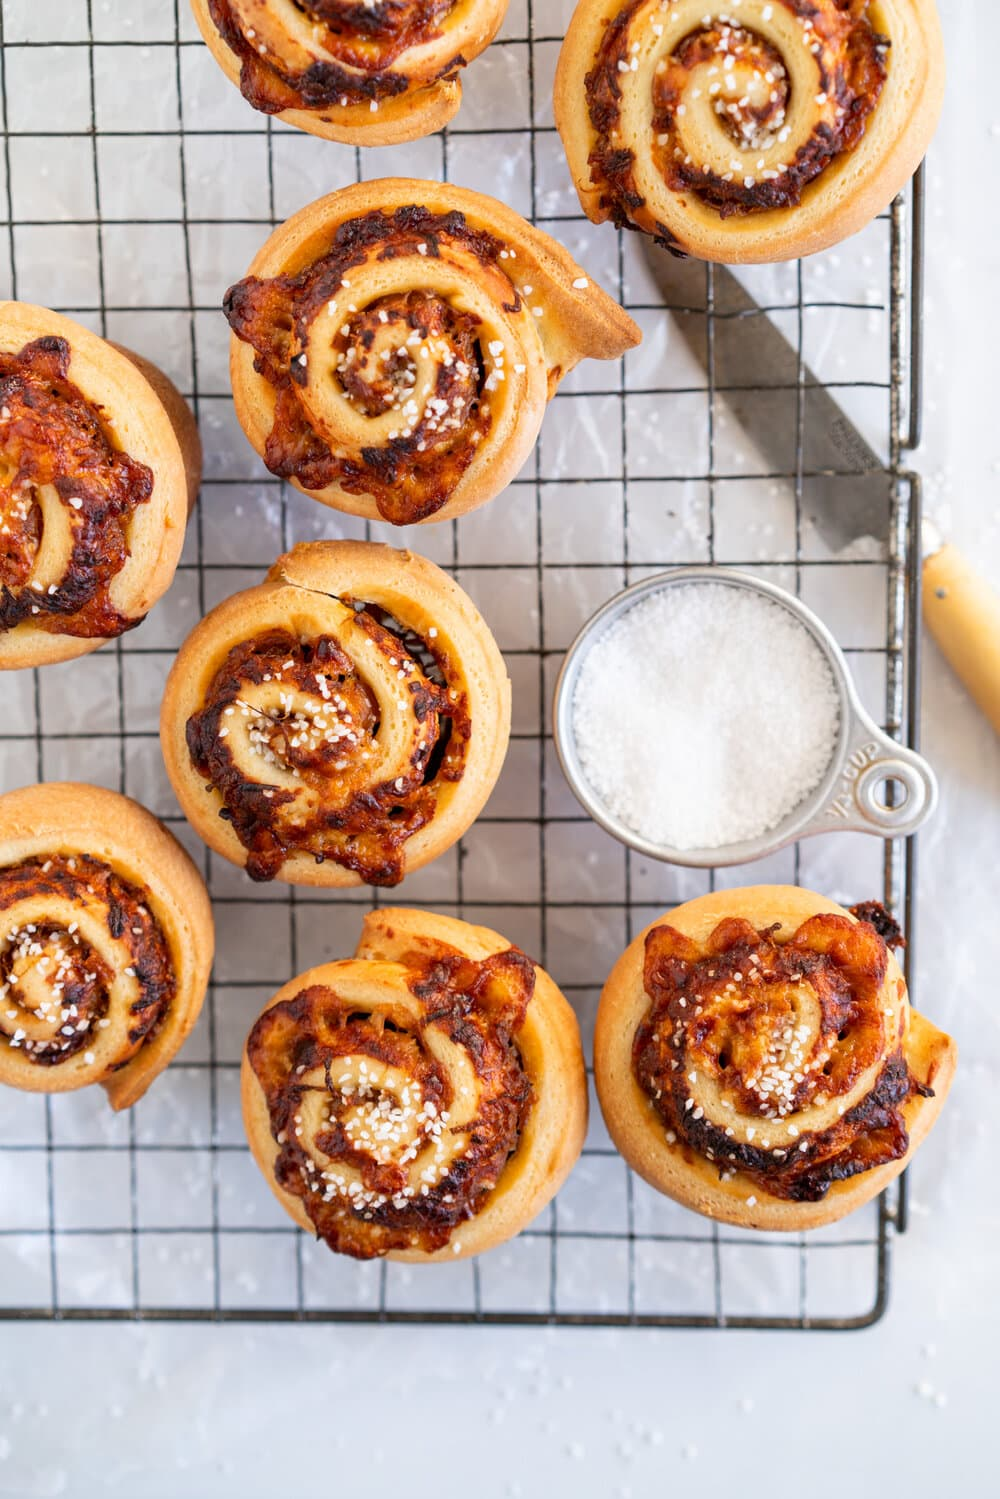 Sharp Cheddar cheese and caramelised onion brioche rolls. Fluffy brioche is spread with sweet caramelised onions and sprinkled with grated sharp cheddar, then rolled into perfect rolls and baked to perfection - cheesy onion goodness. These are easy to make and make the perfect savoury breakfast or brunch treat.